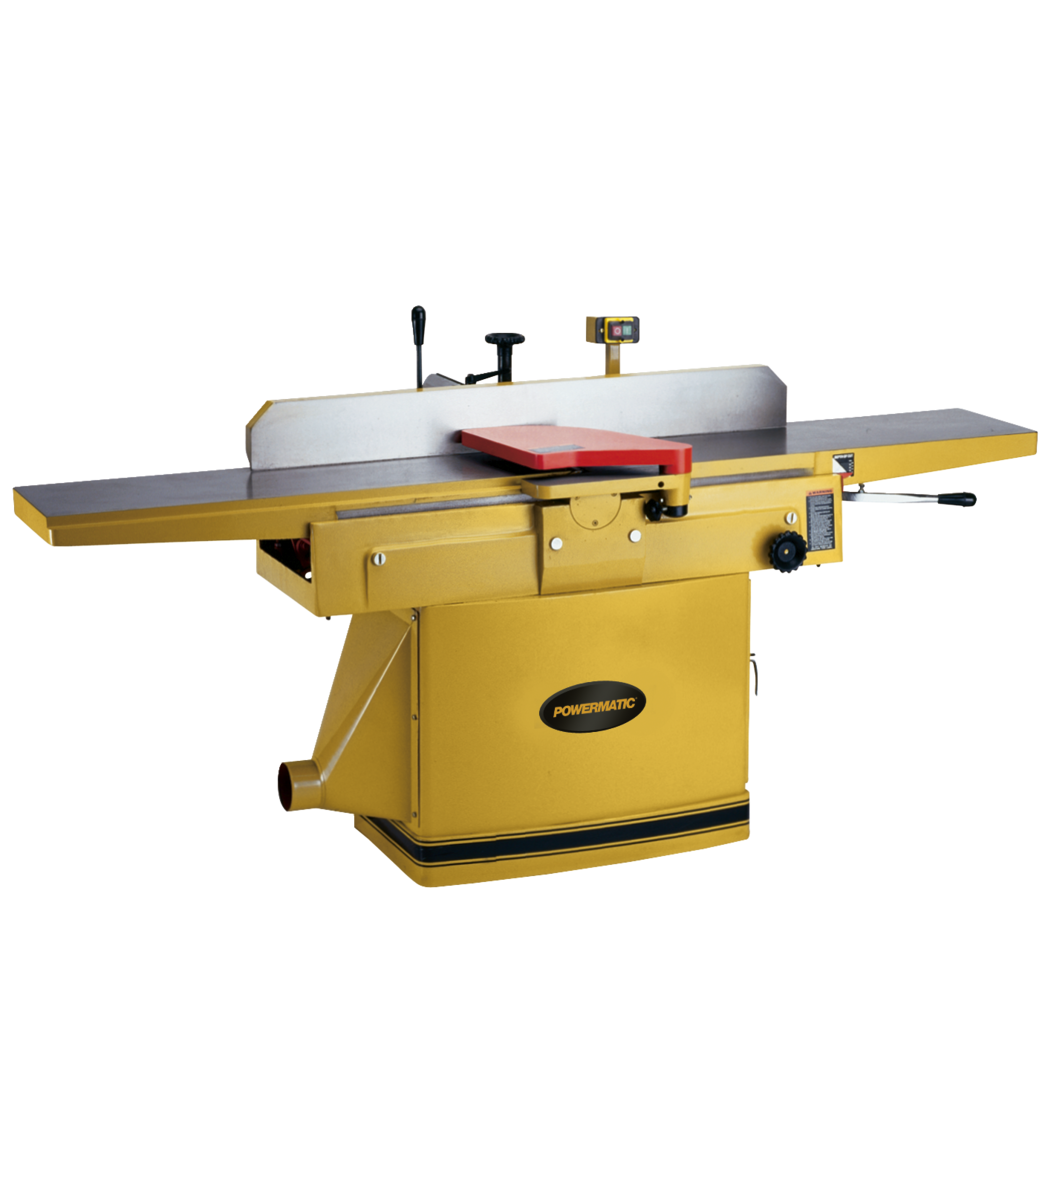 1285 Jointer, 3HP 3PH 230/460V, Helical Head